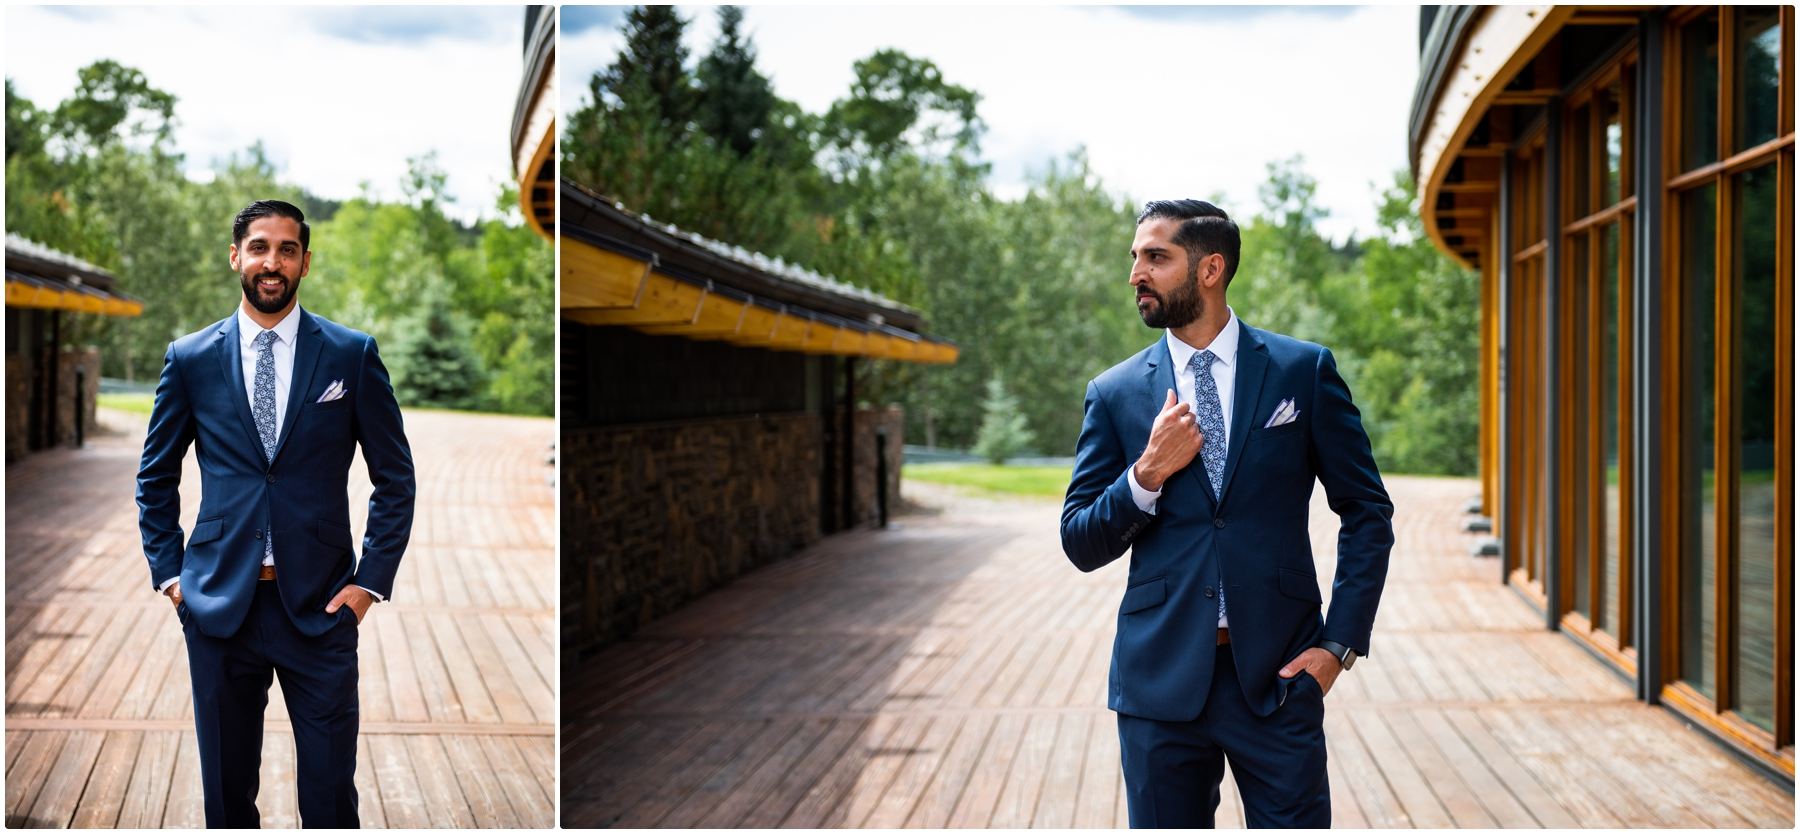 Priddis Azuridge Estate Hotel Wedding - Groom Portrait